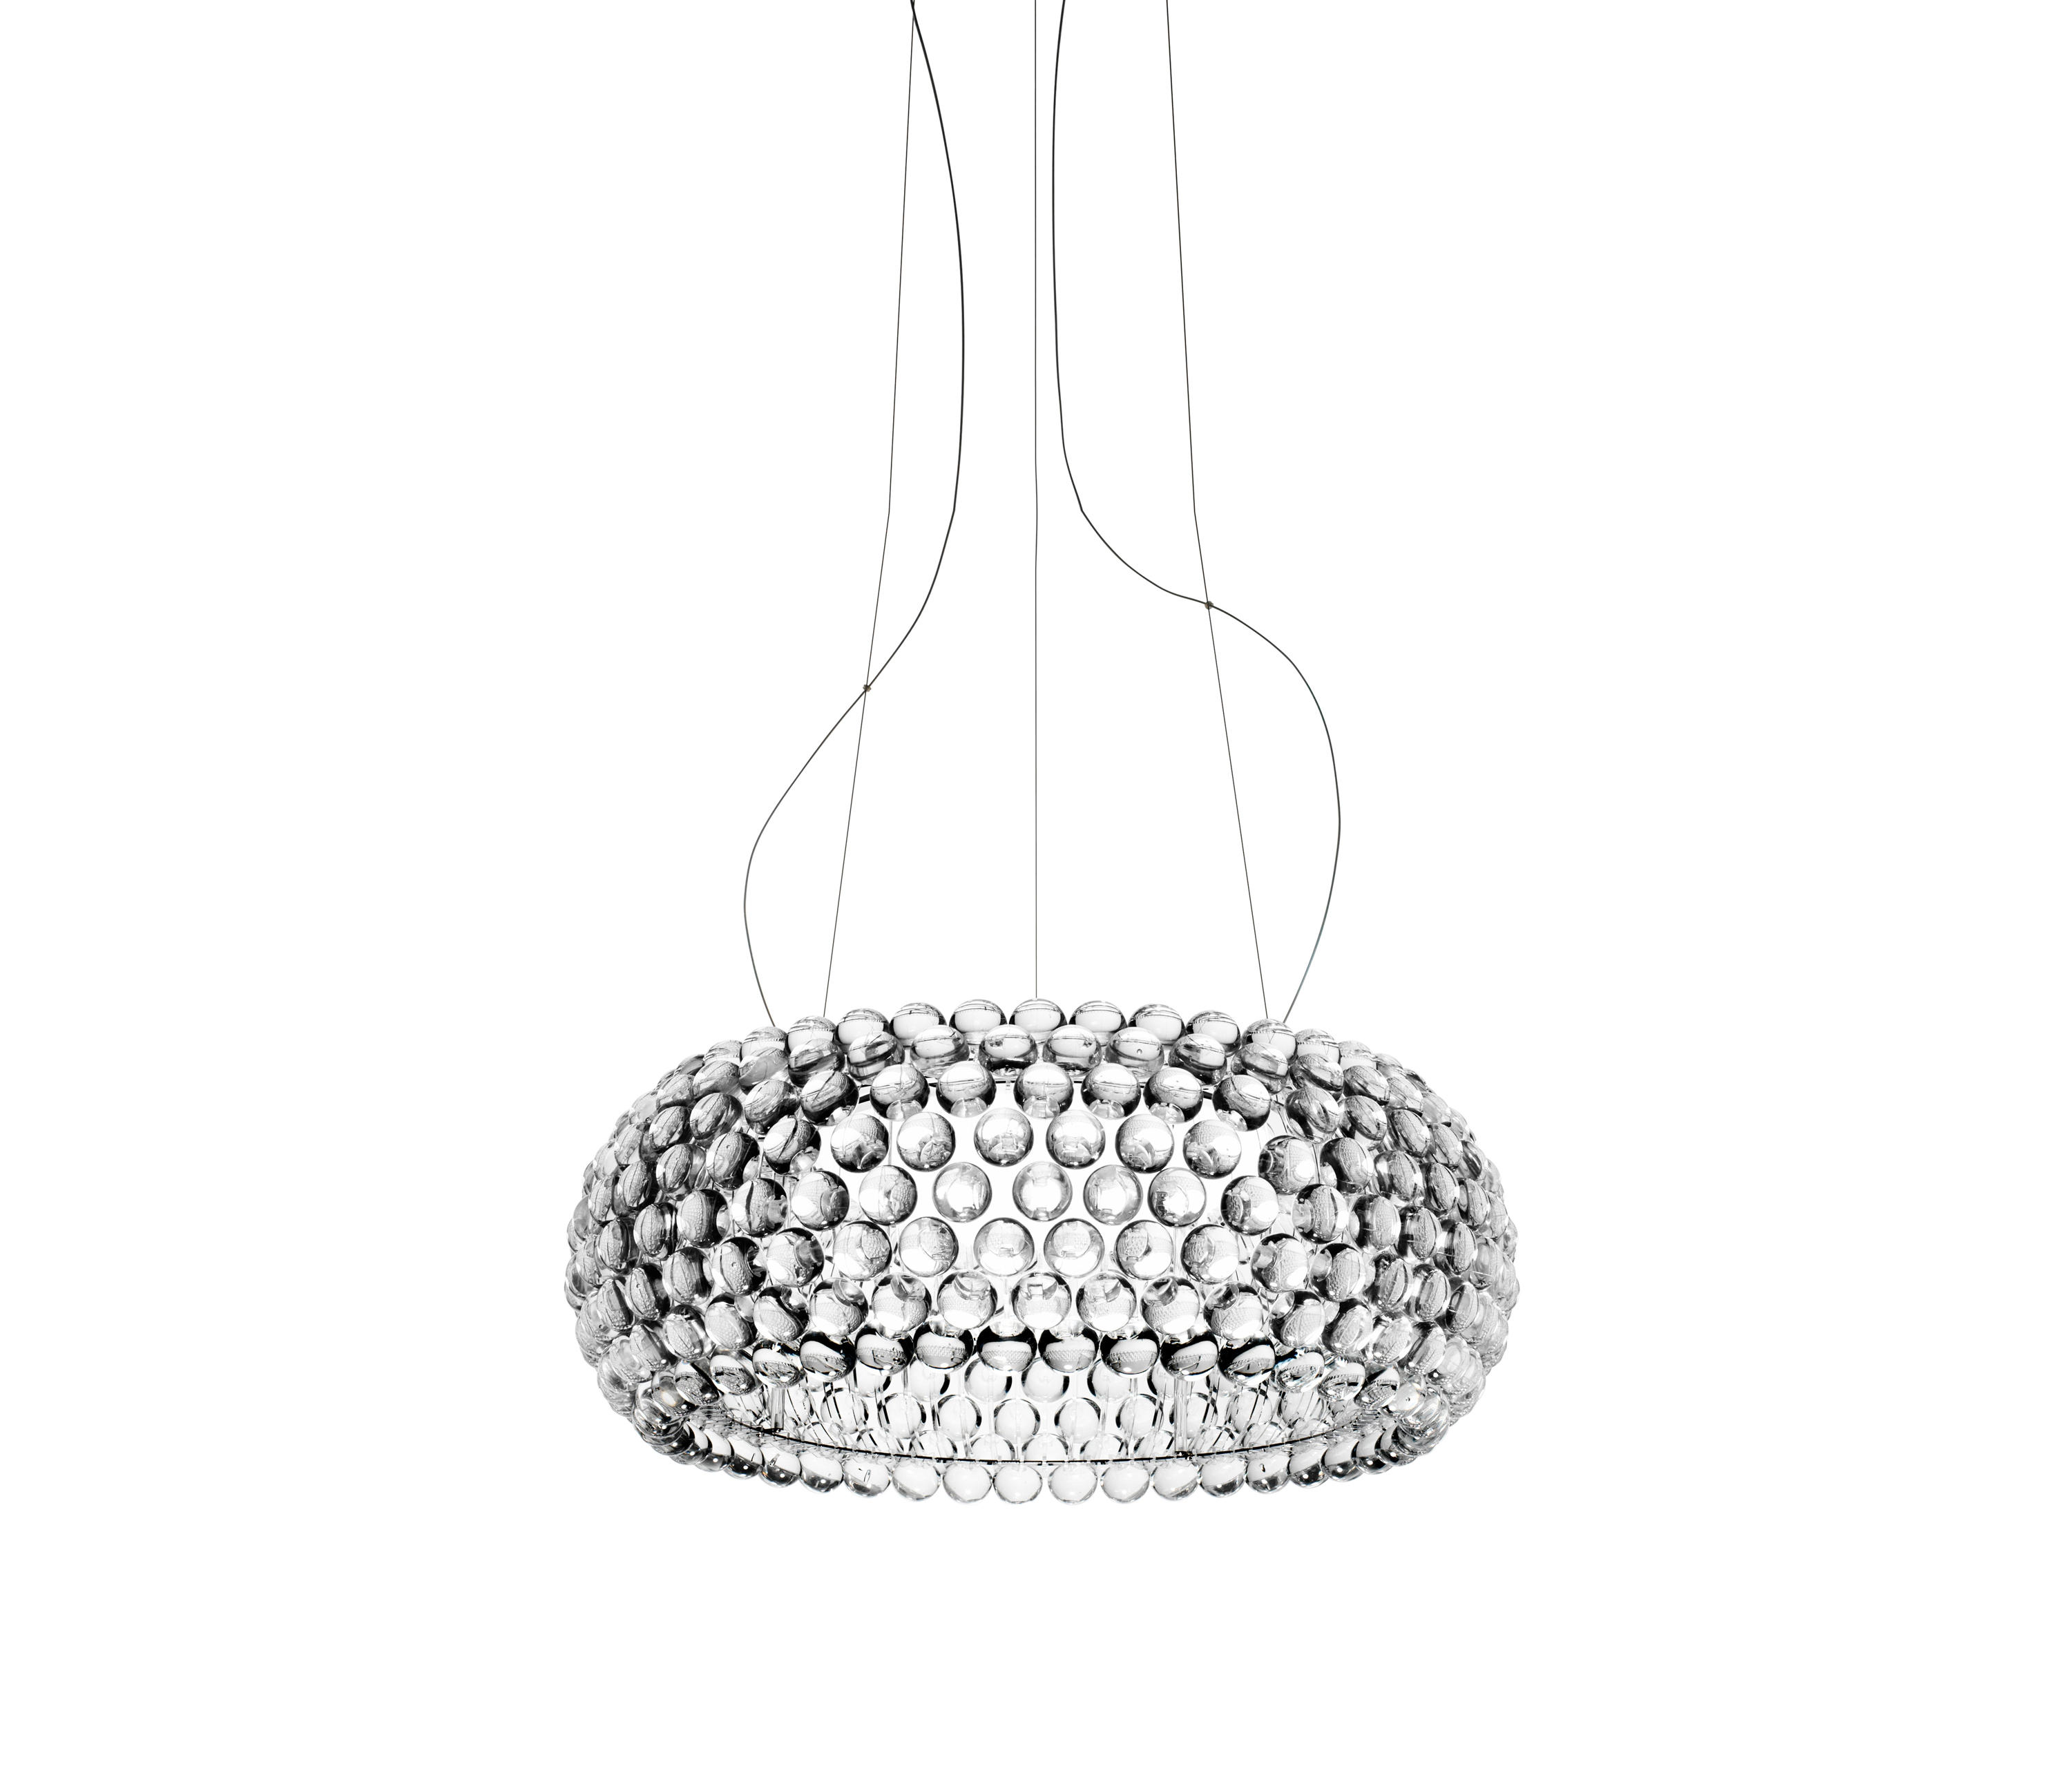 XJC8015 aboche pendant light by Foscarini 宇宙汗珠子吊灯